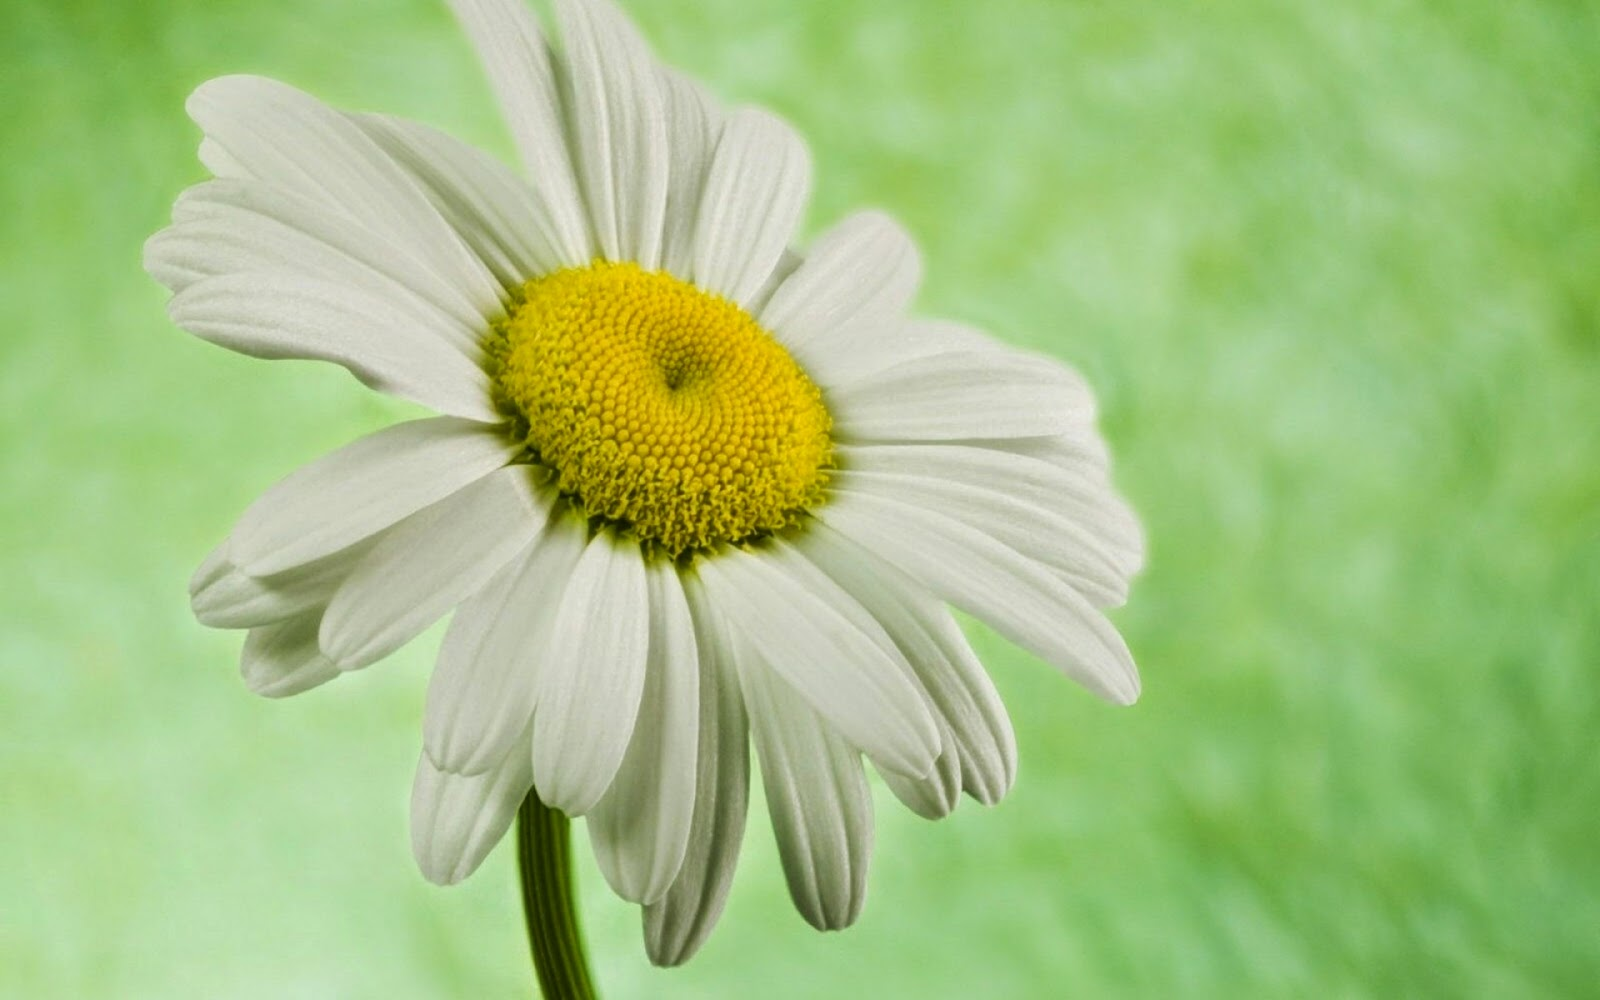 single-white-daisy-flower-image.jpg